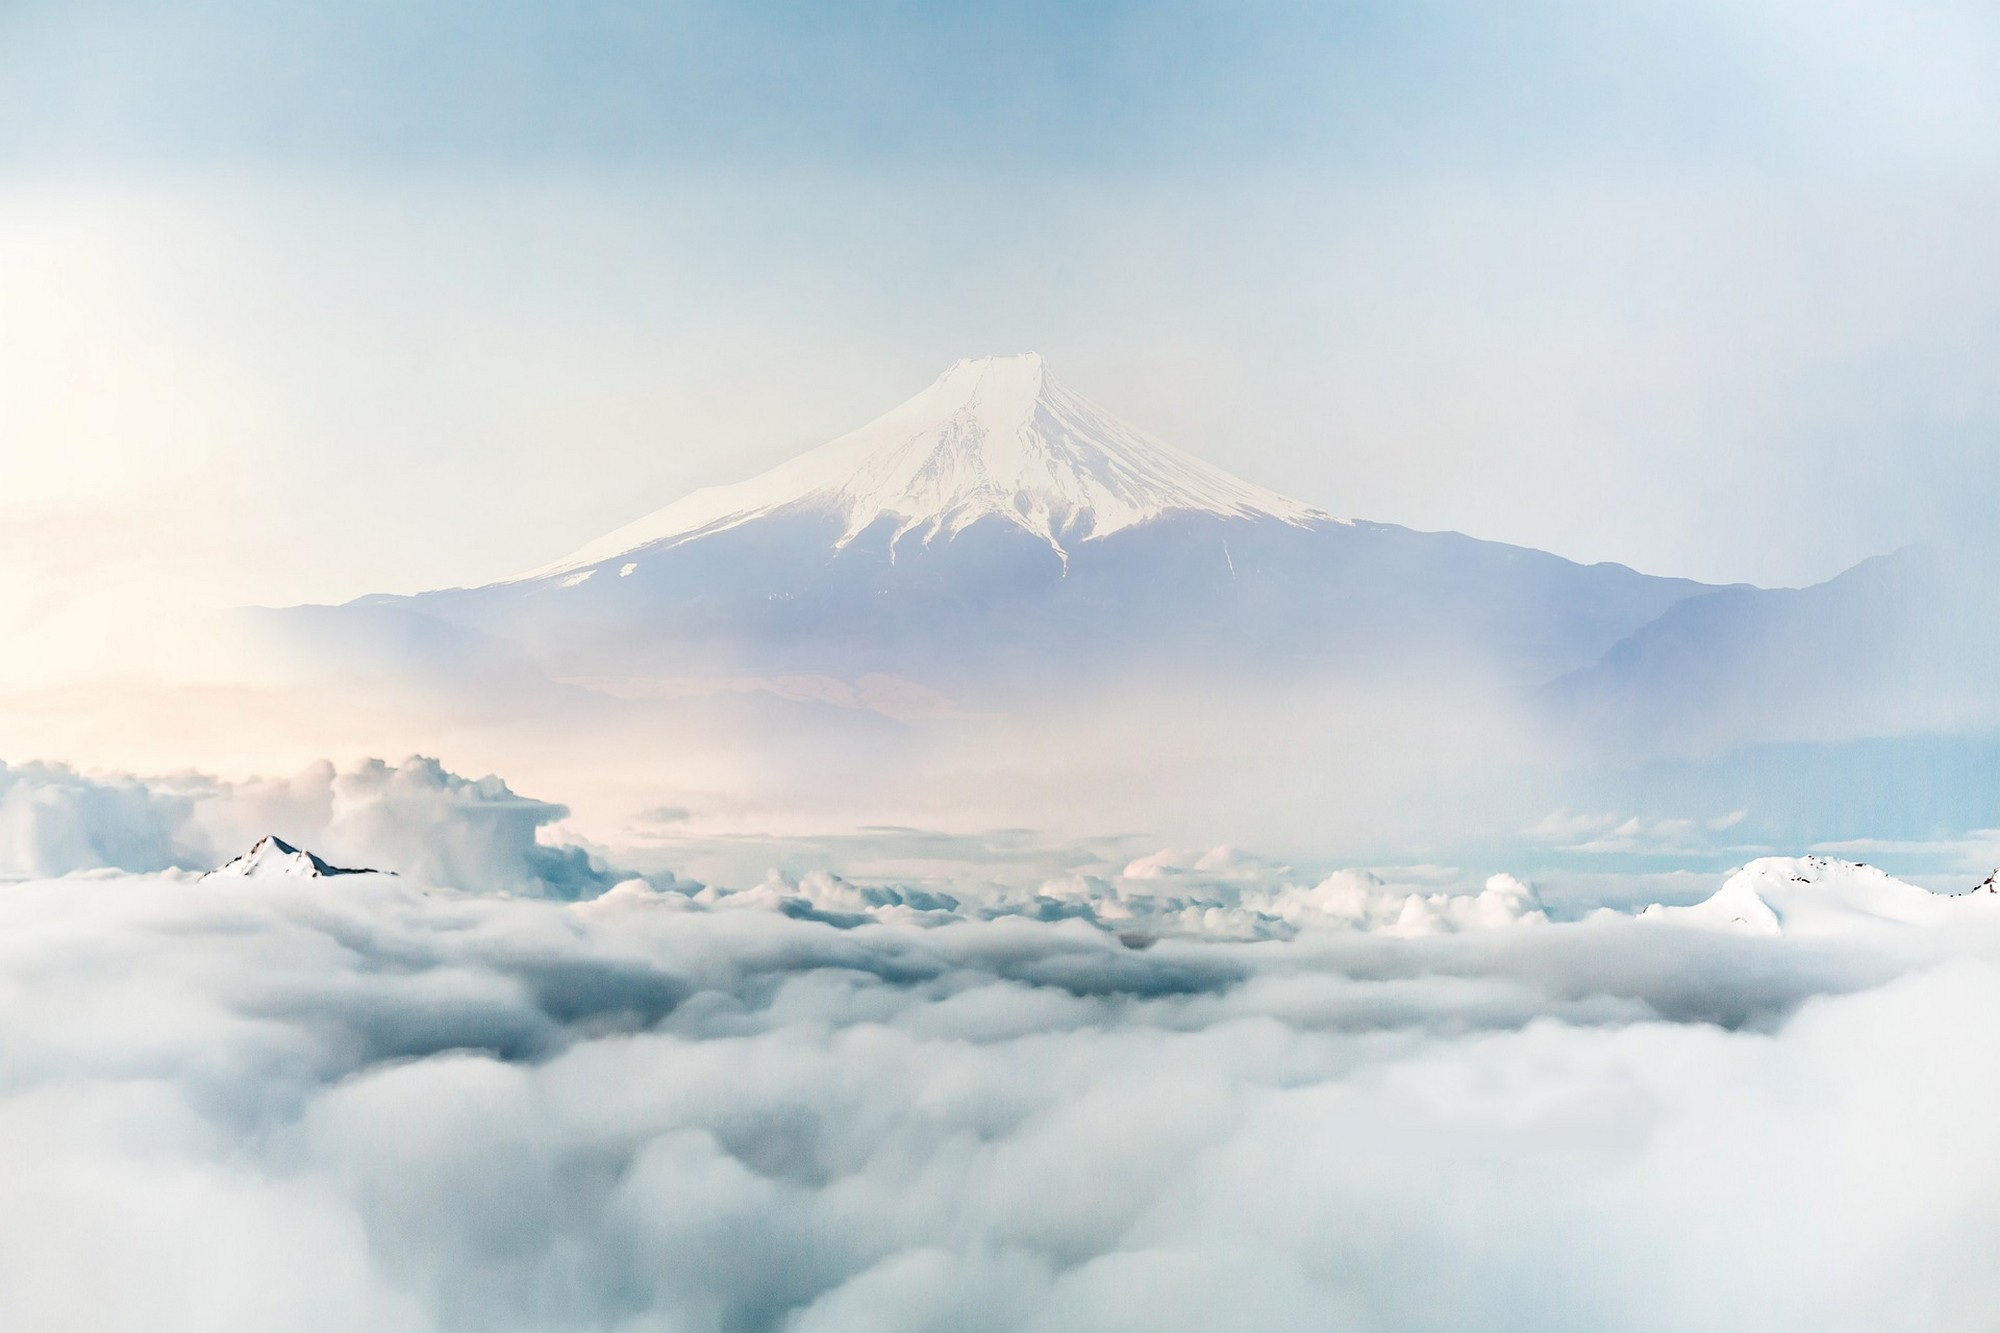 Japanese ski season mount fiji